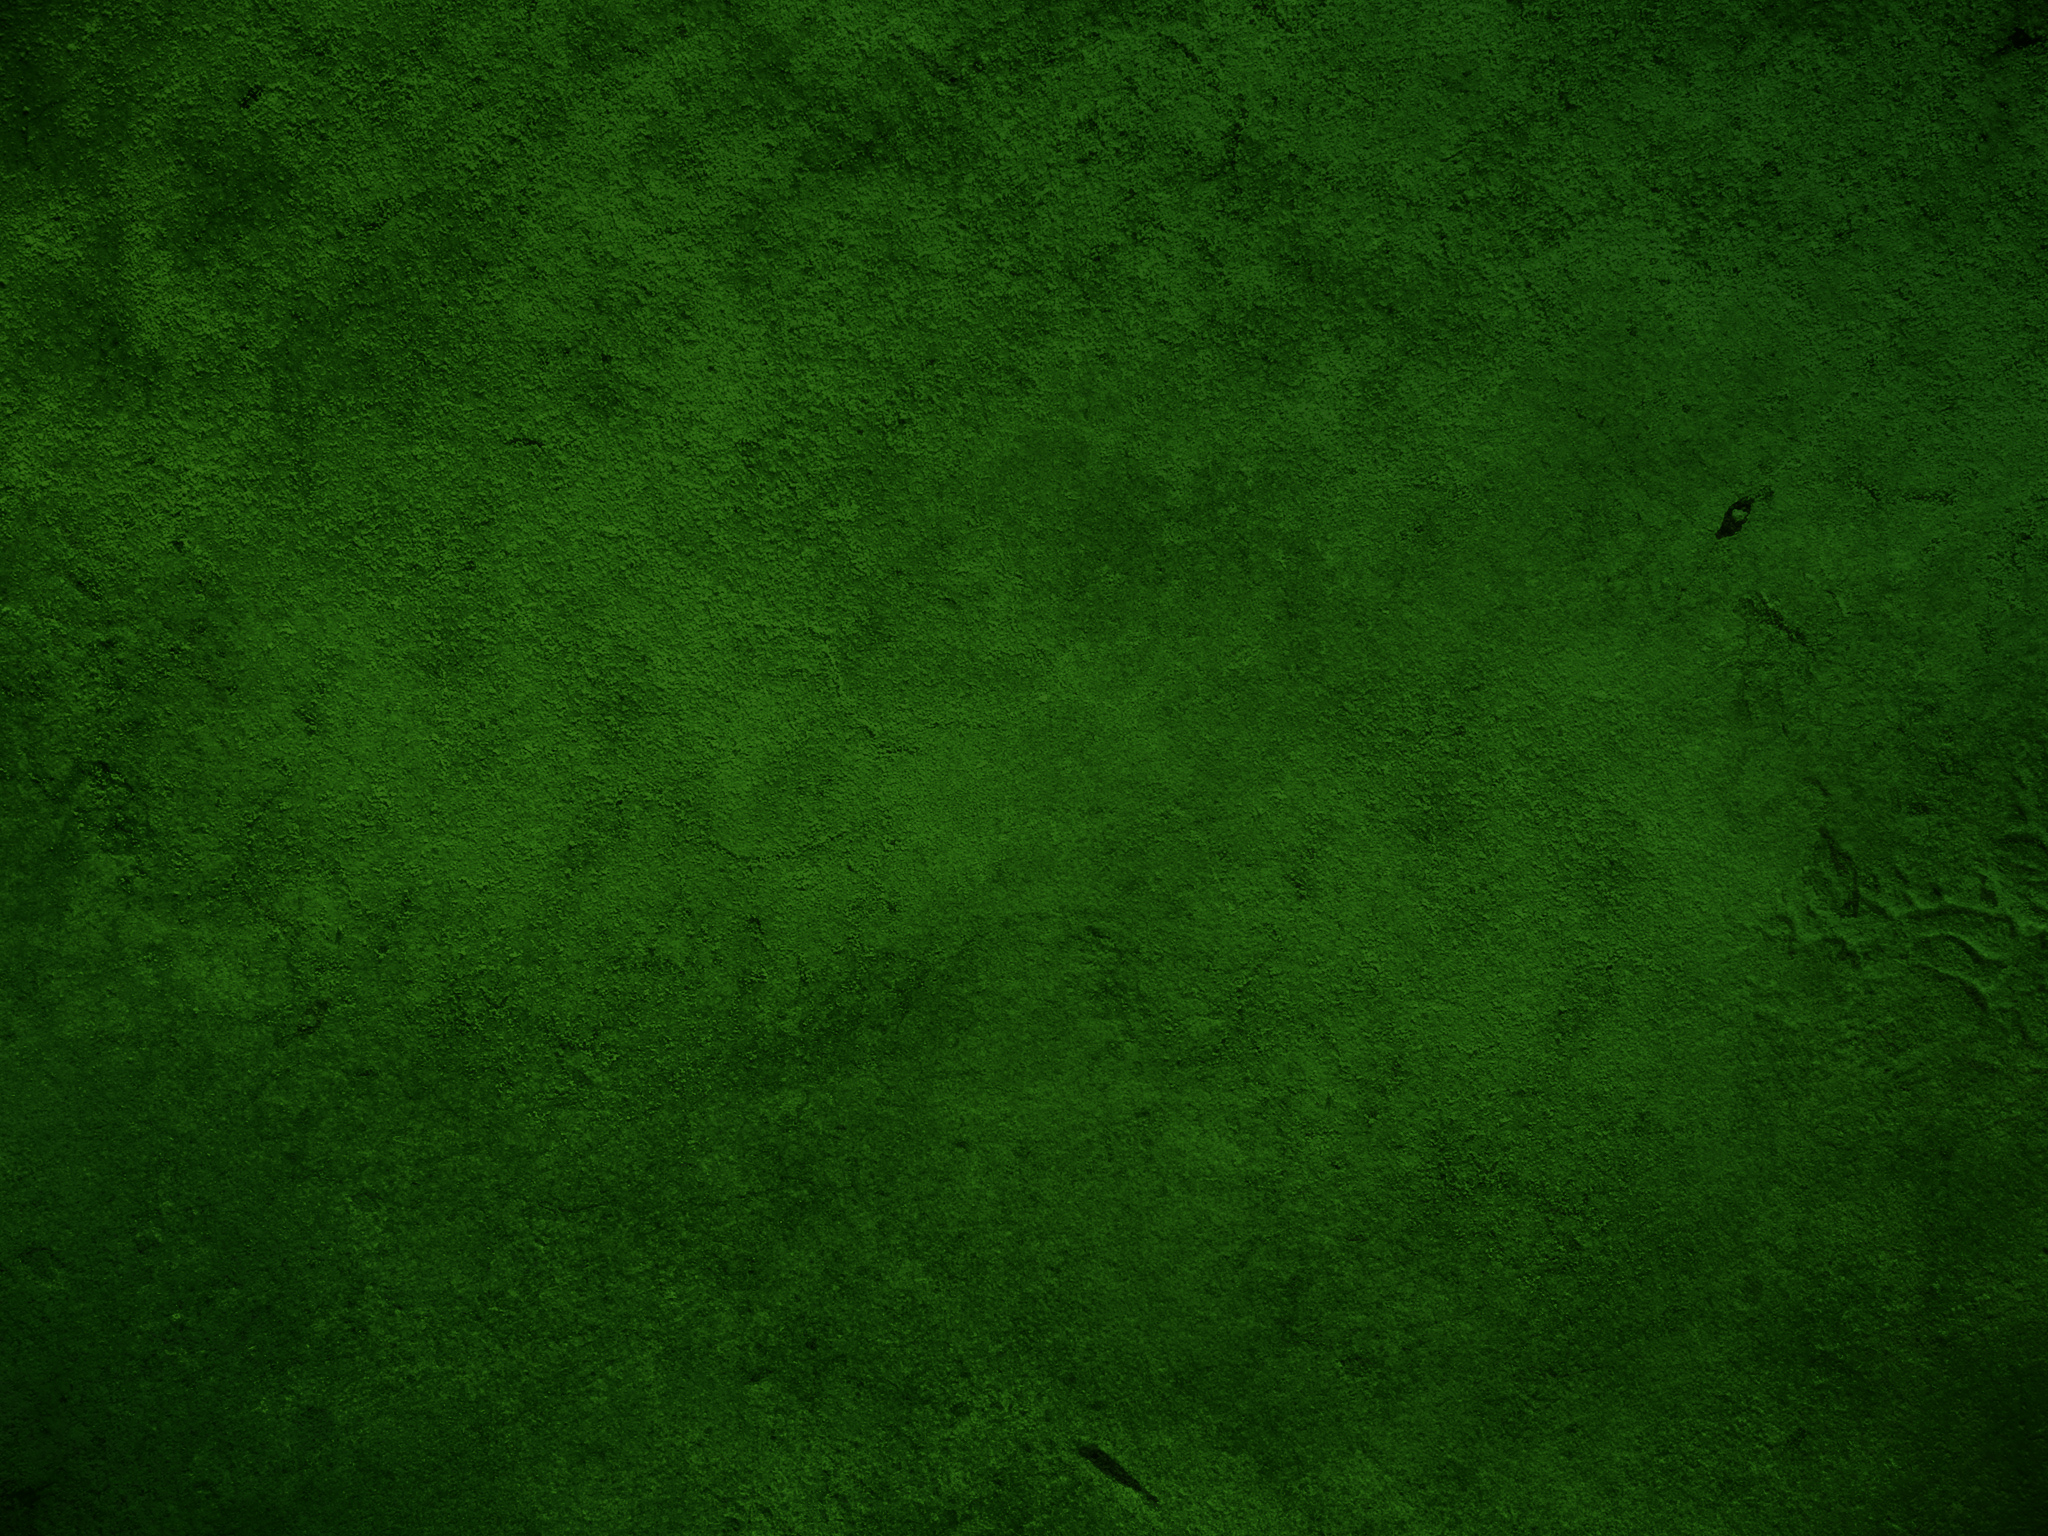 Green Background Design Wallpaper Emerald Green W...